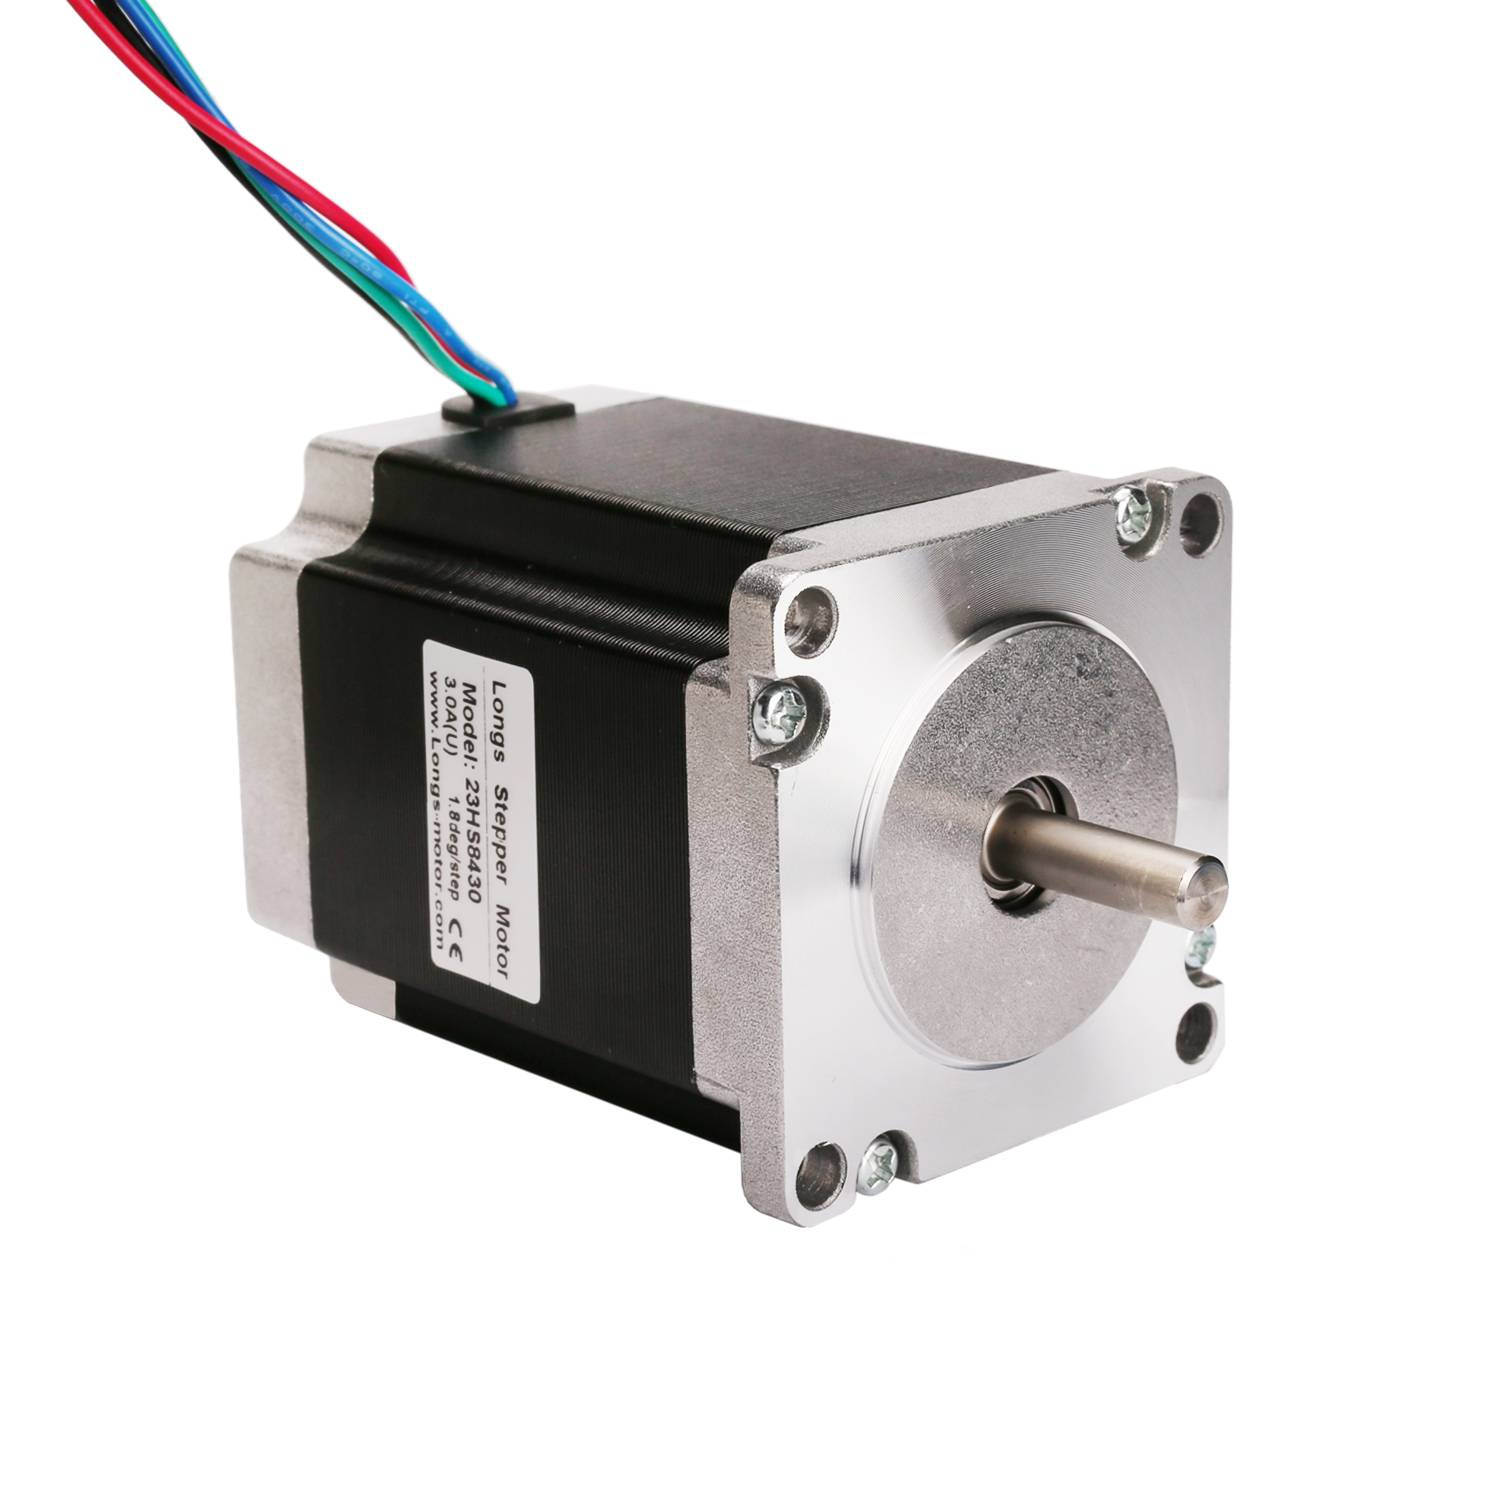 Հիբրիդ stepper MOTOR-nema23HS Featured Image